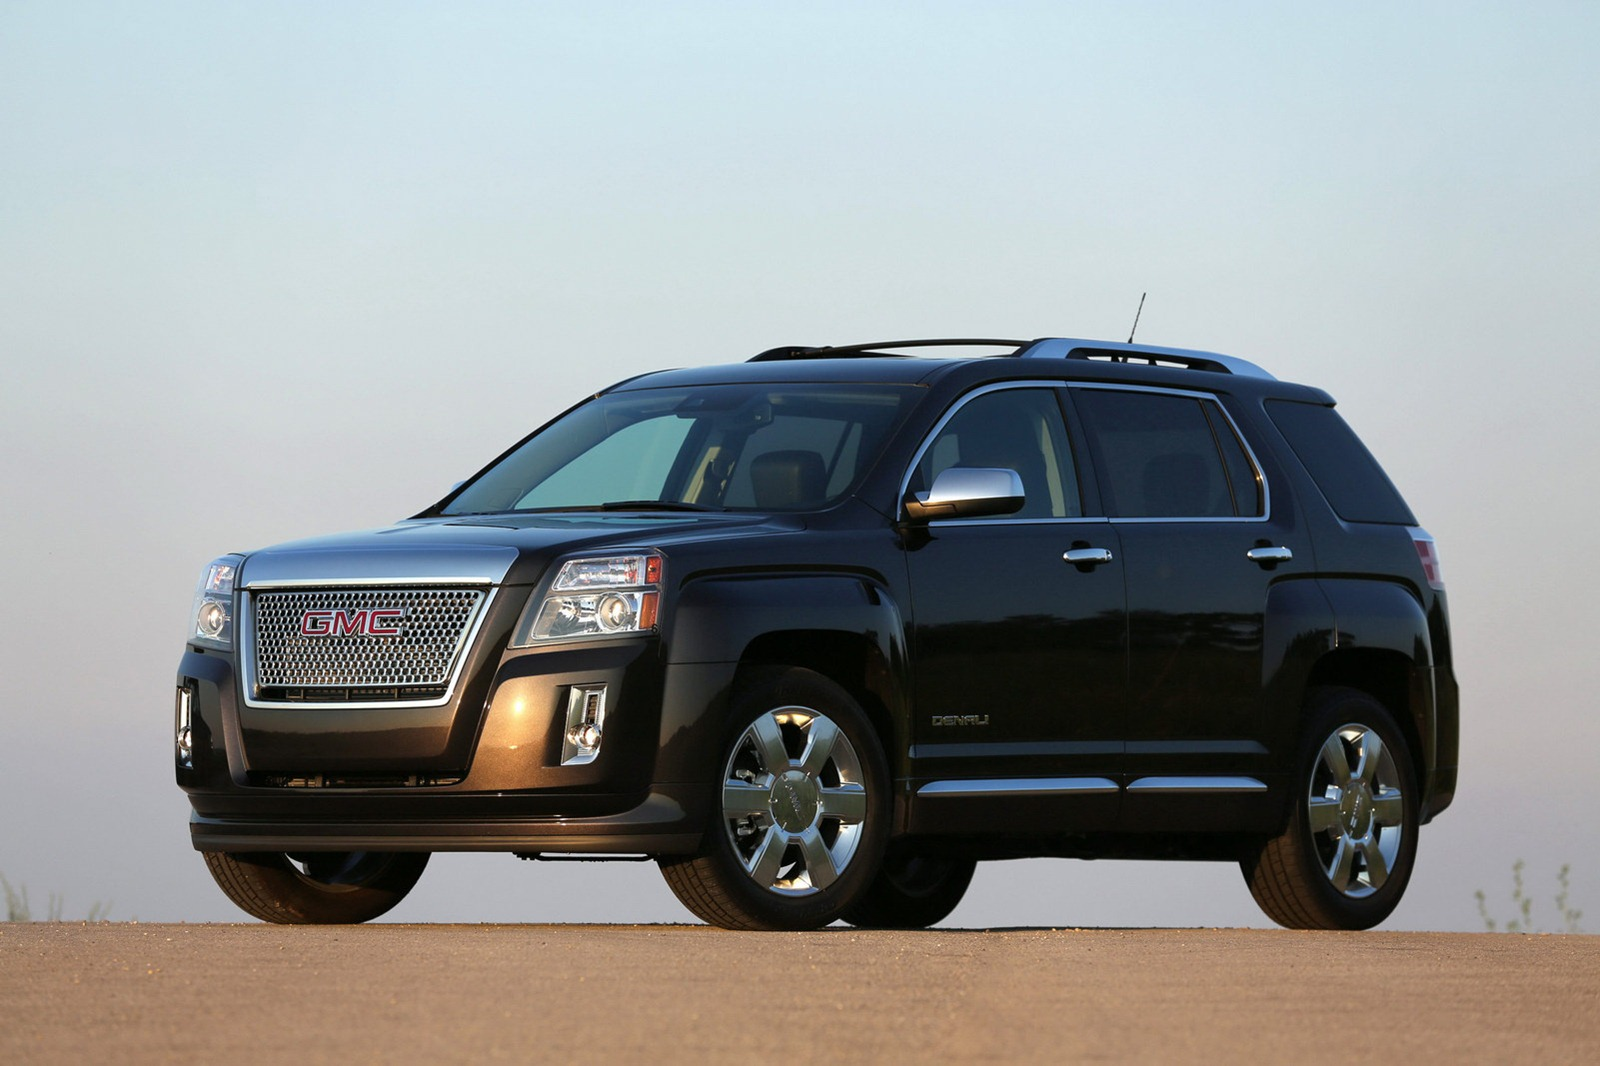 2013 GMC Terrain Denali 2013 GMC Terrain Denali with Price Range from $35,350 to $38,600